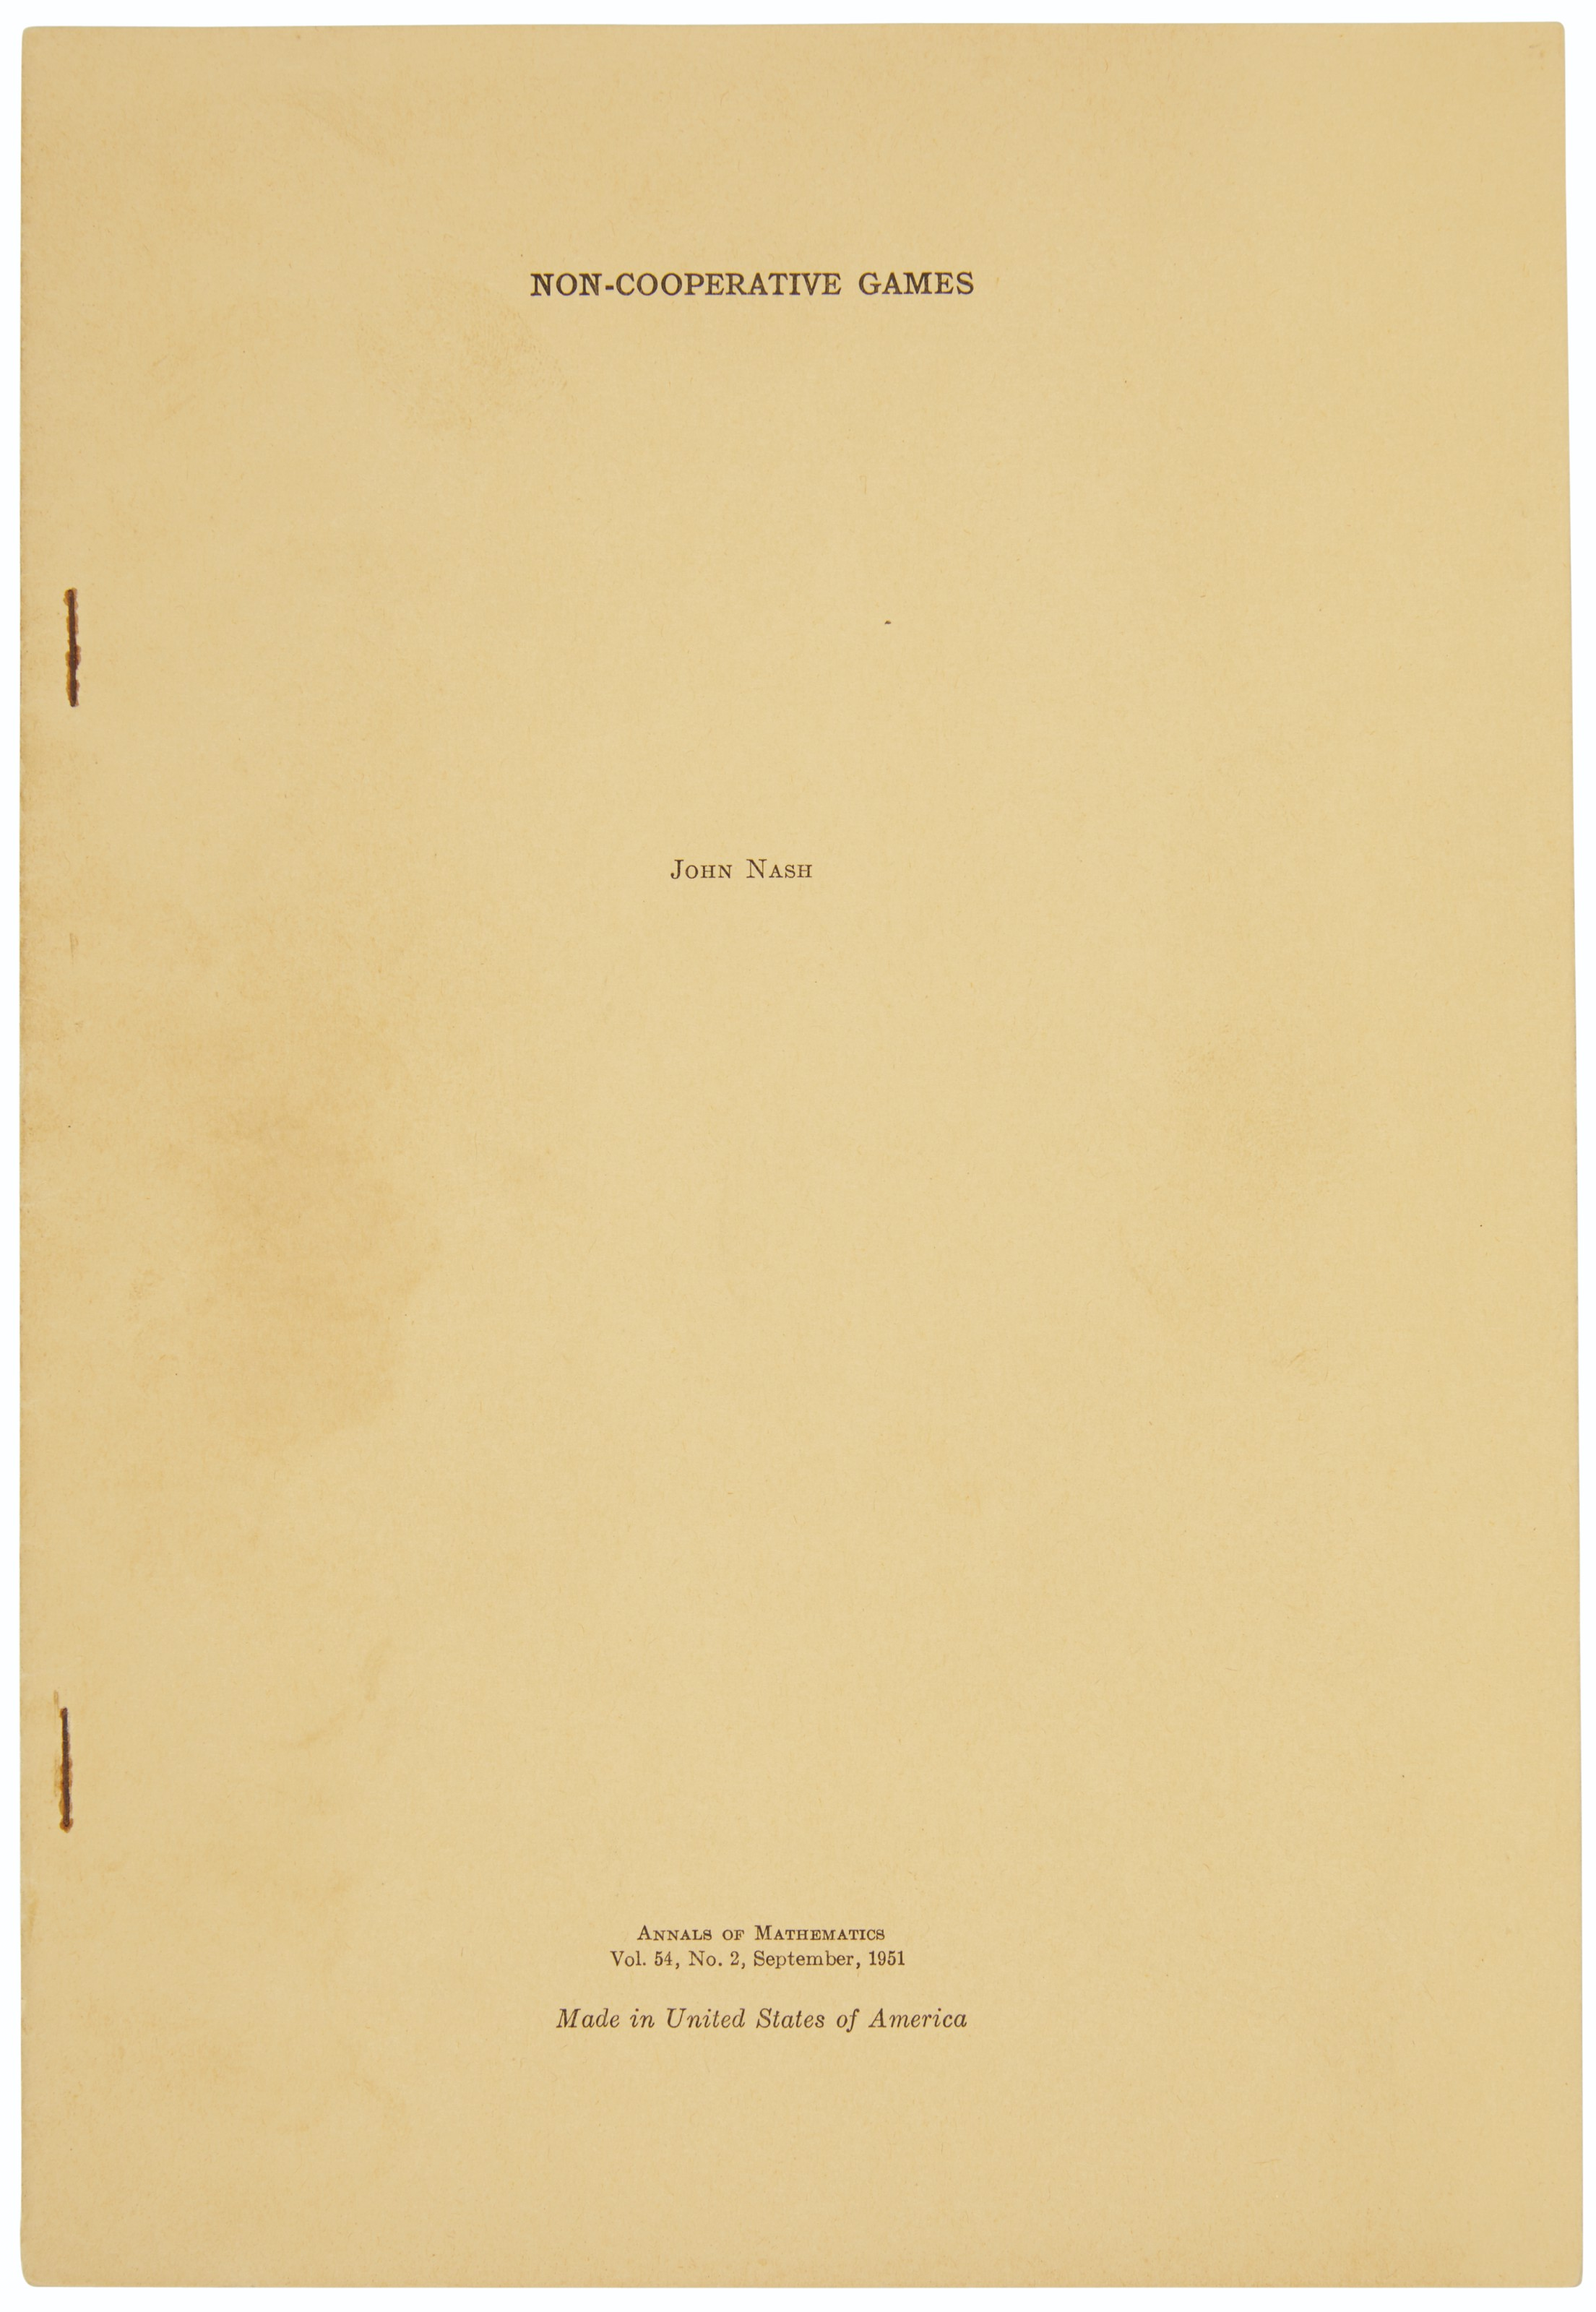 Nash's doctoral thesis